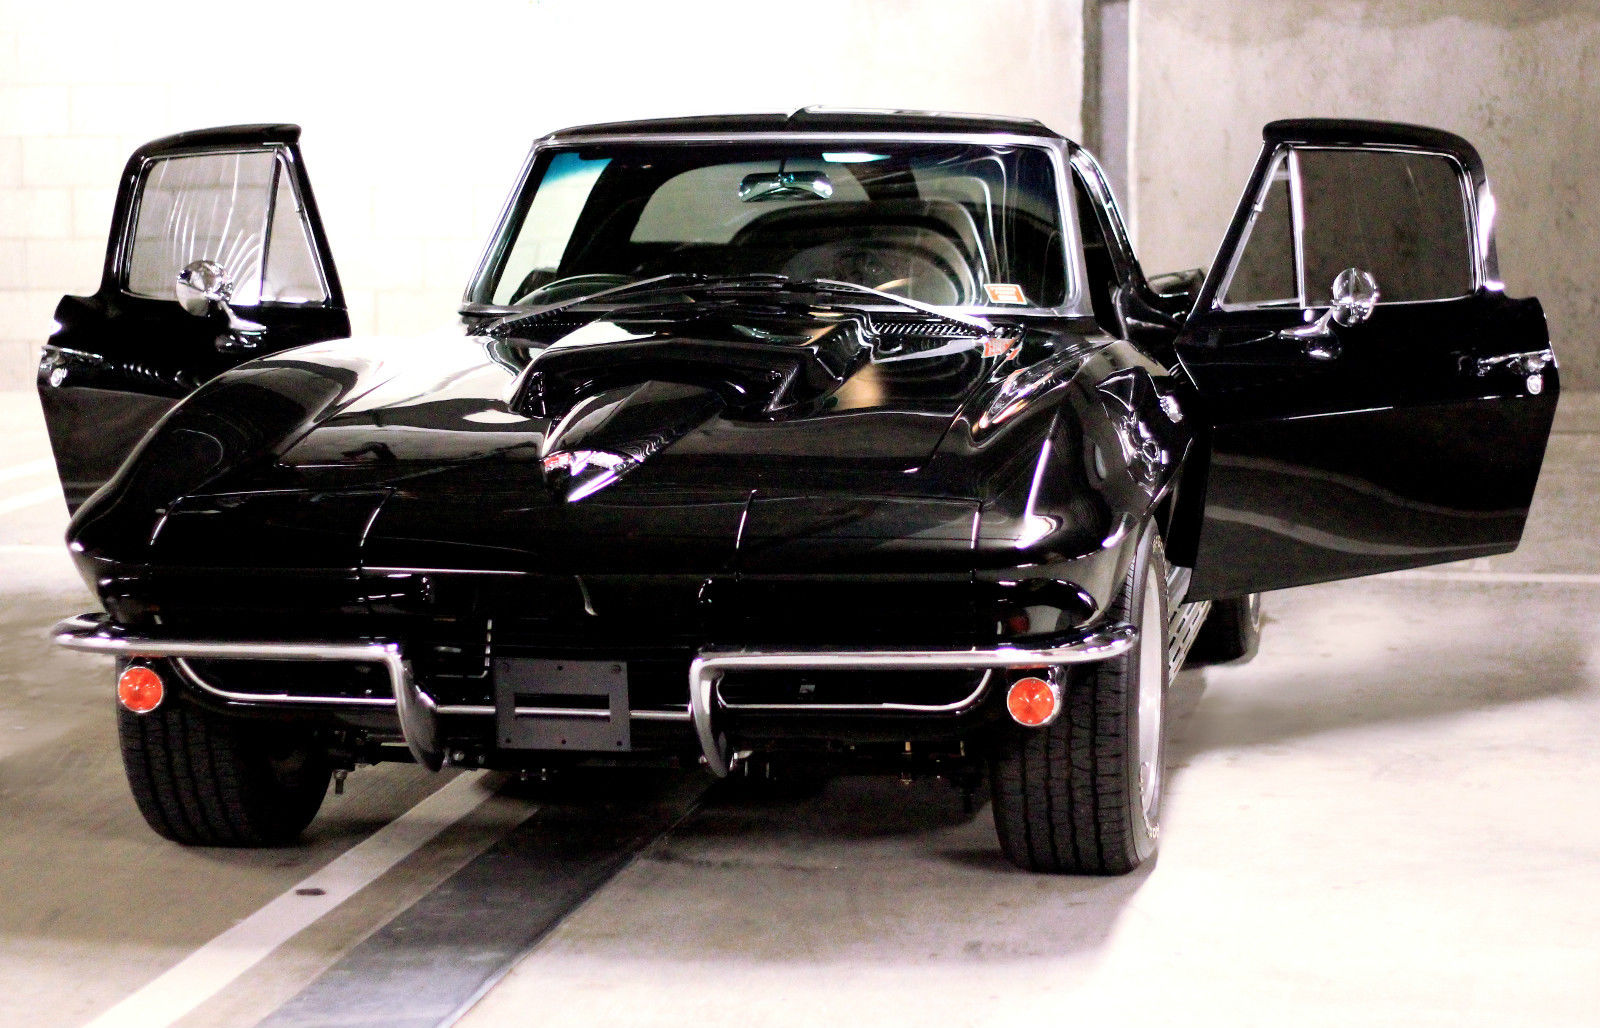 1963 Chevrolet Corvette Stingray Split Window-14343